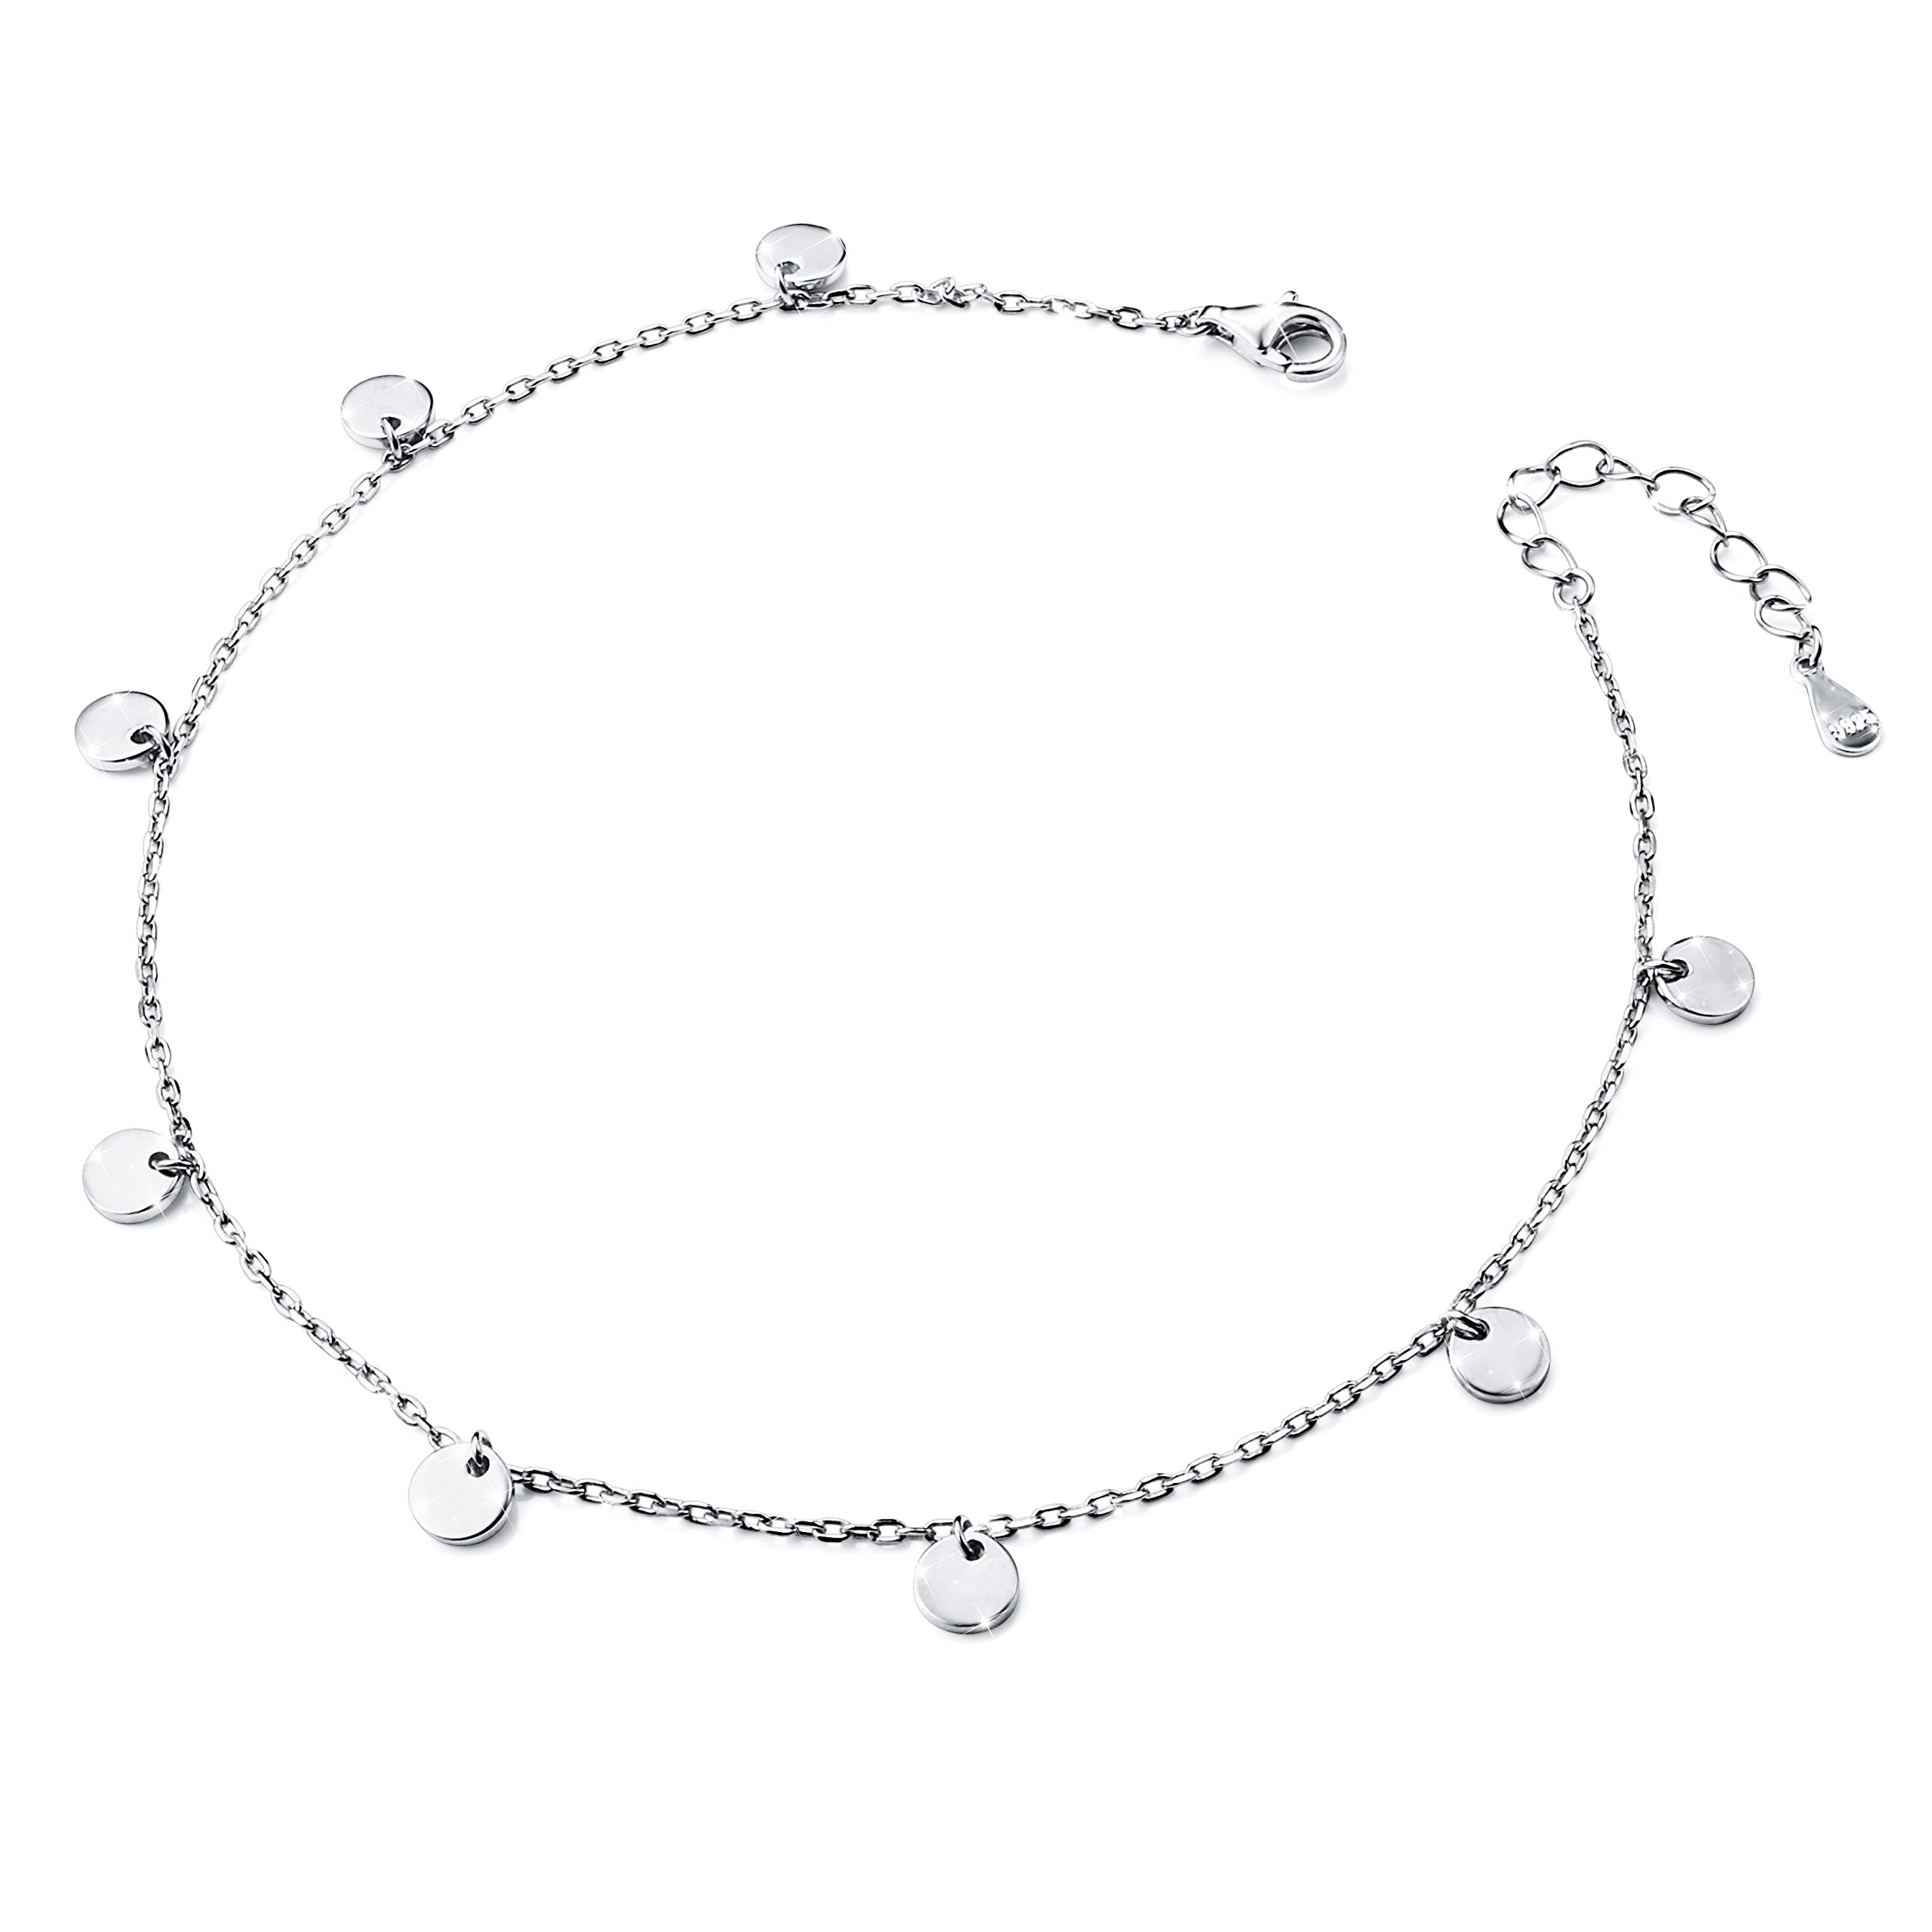 Dot Slice Anklet for Women Girl S925 Sterling Silver Adjustable Beach Style Foot Ankle Bracelet Jewelry by SILVER MOUNTAIN